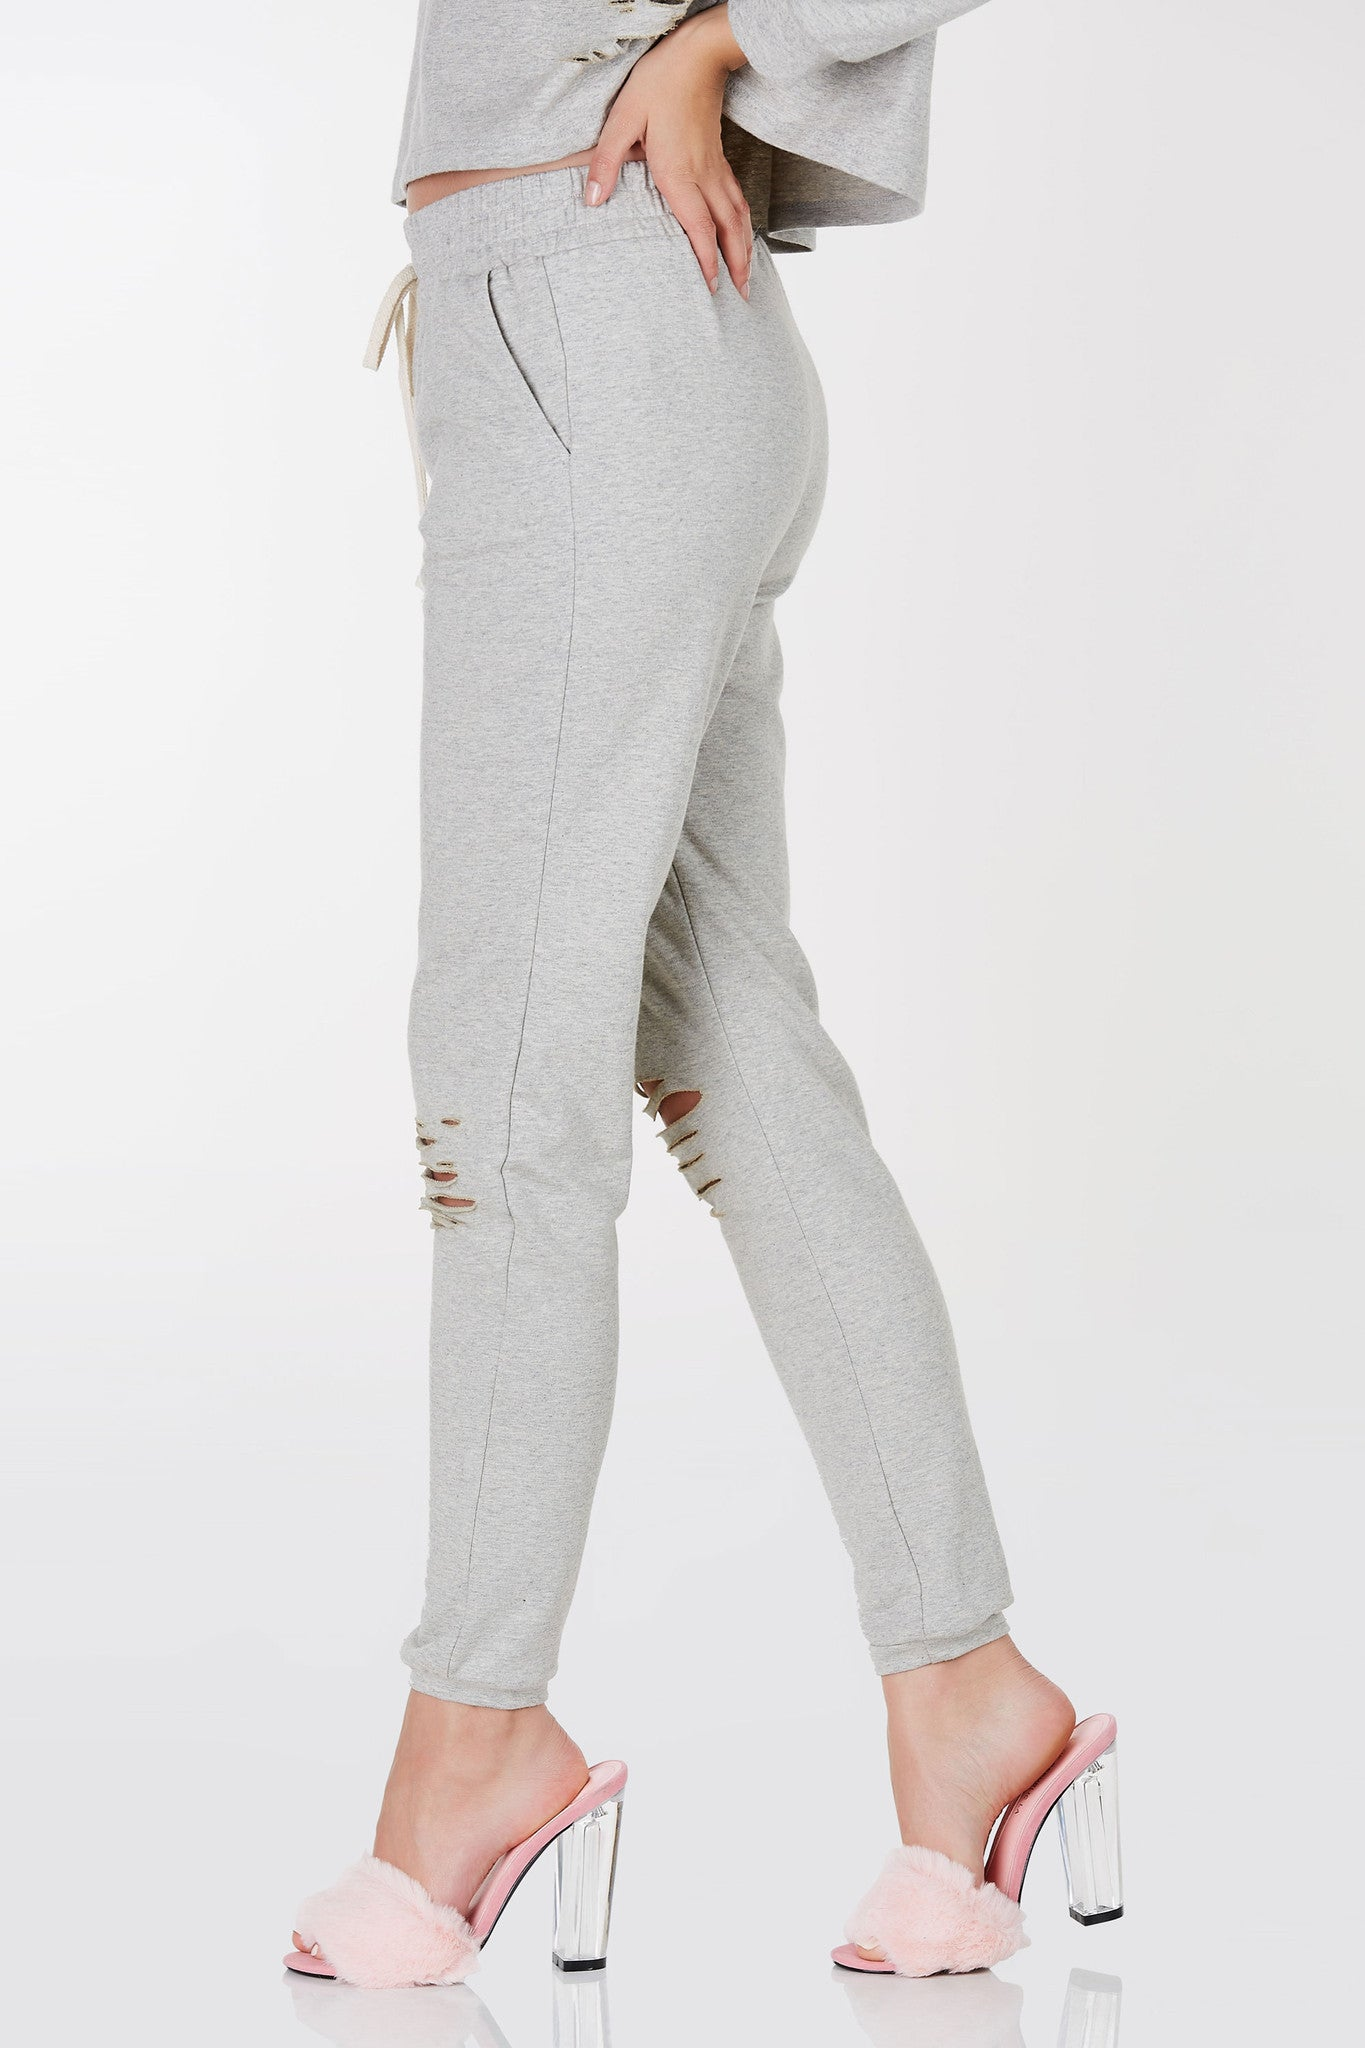 Classic drawstring sweatpants with relaxed fit. Elasticized waistband and distressing in front.